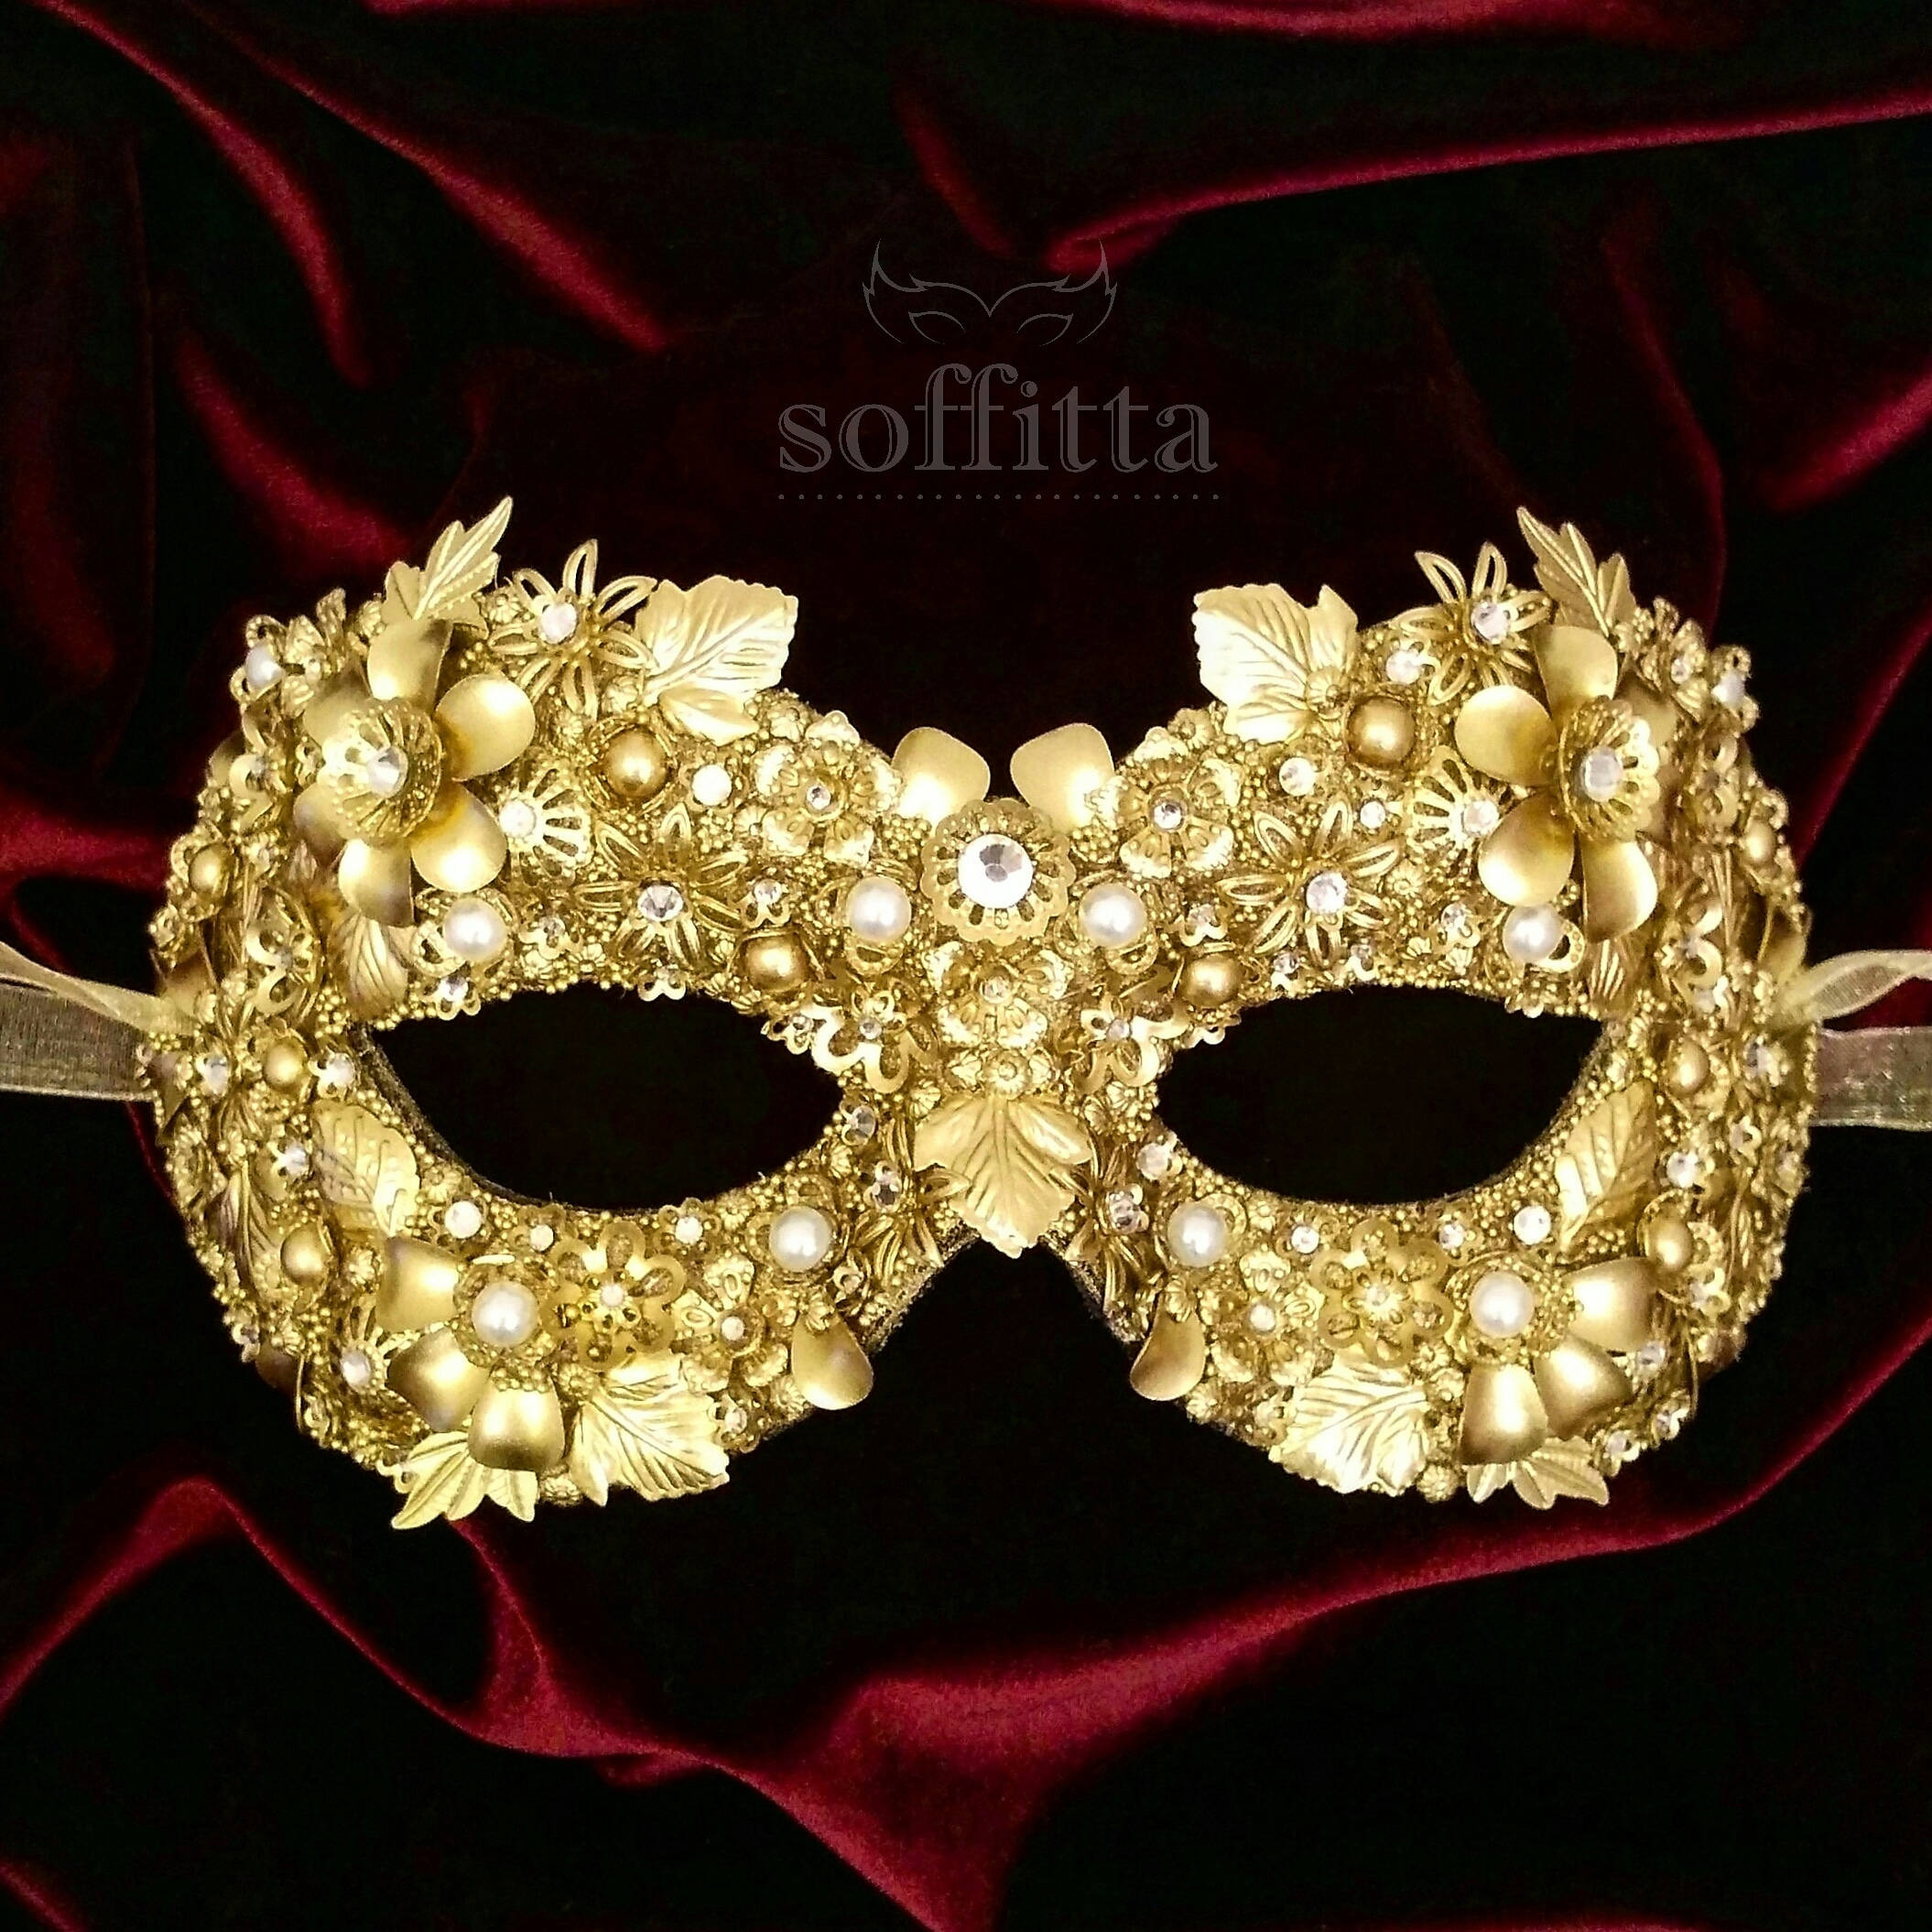 Gold Floral Masquerade Mask With Rhinestones Venetian Style